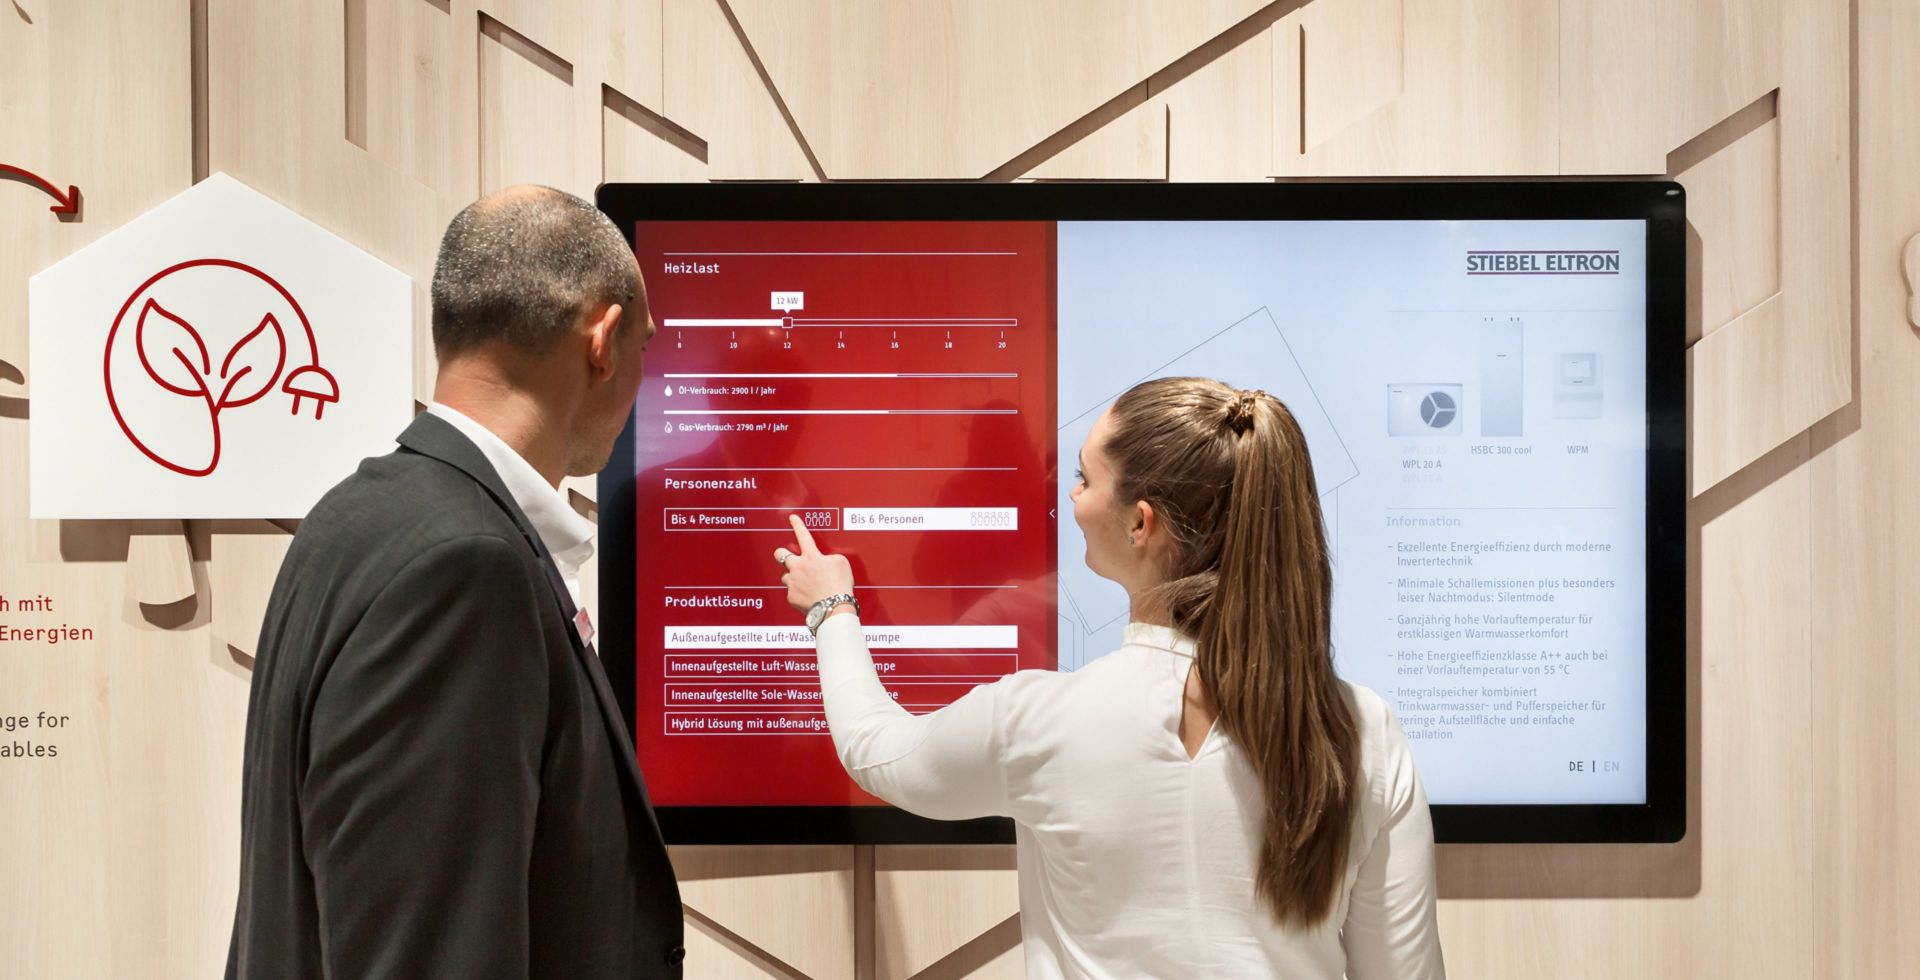 Stiebel Eltron - ISH 2019 - Multitouch - Large Format Display - Produkt Konfigurator - Interactive Experience - realtime visions